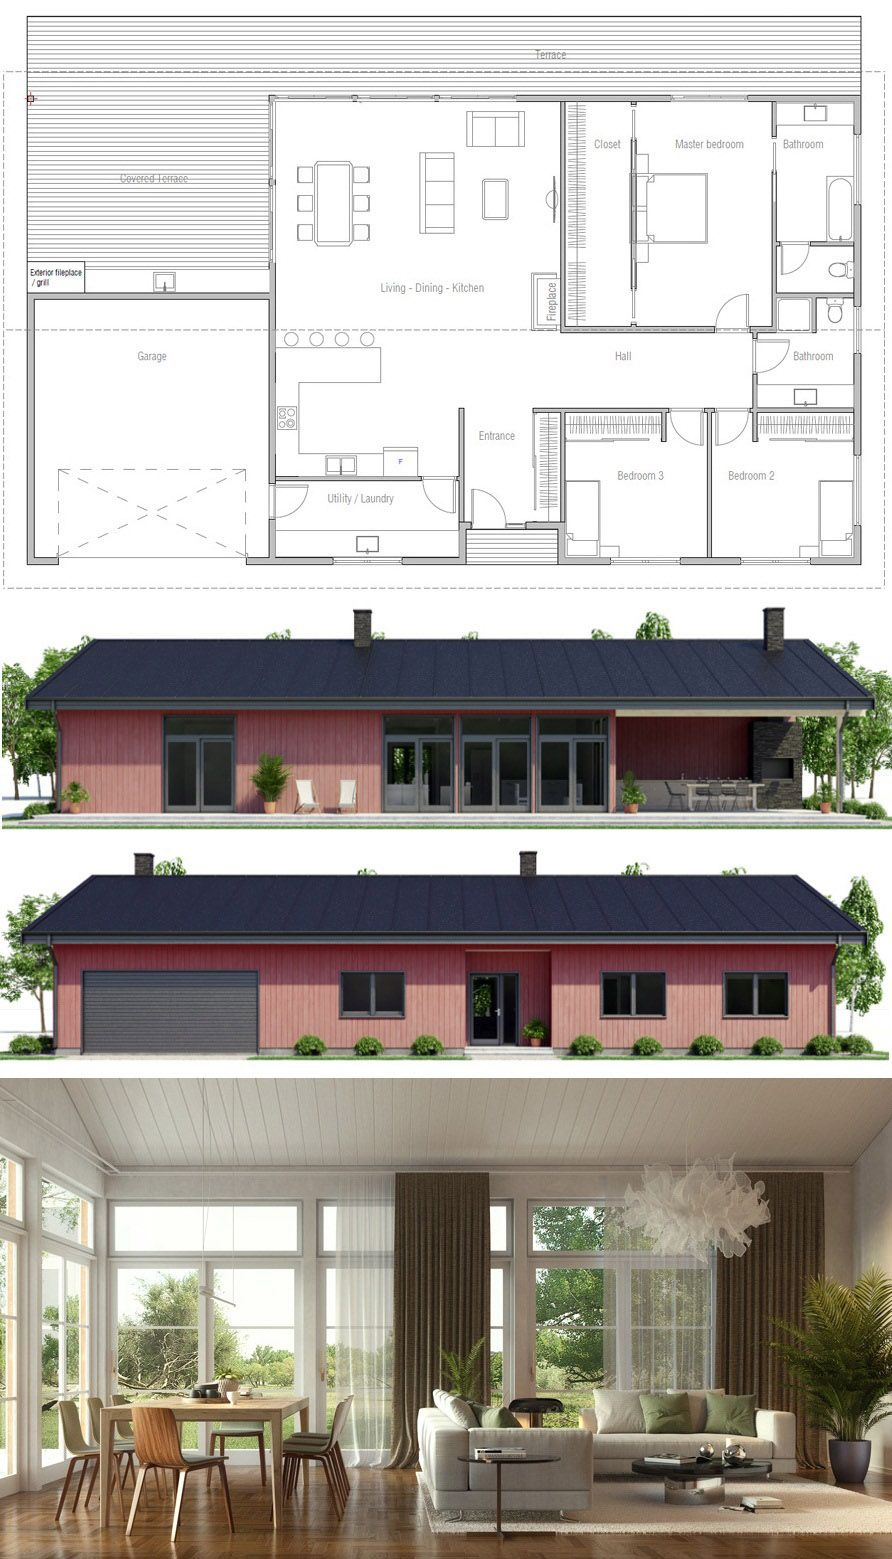 Shipping container house plan